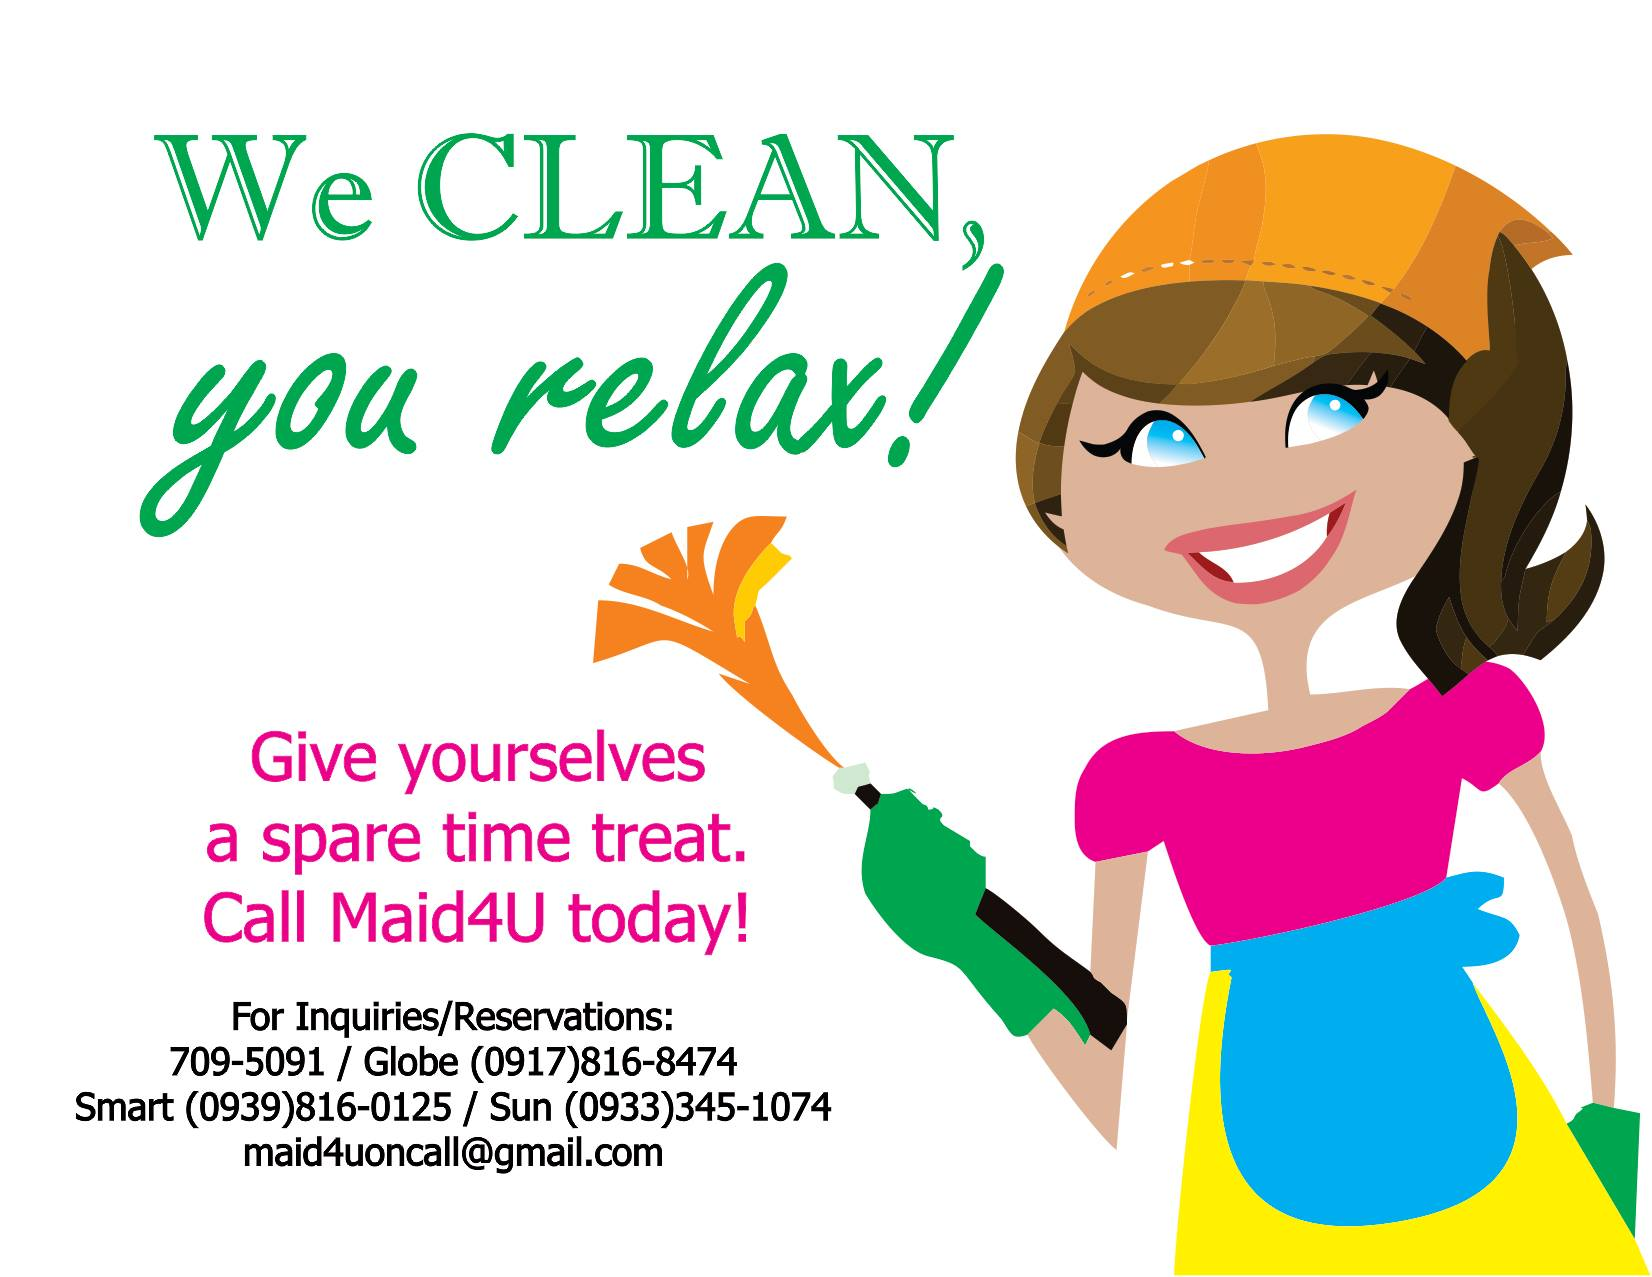 hire mfy cleaning services maid4u in quezon city gawin thumb ms clean generic ad